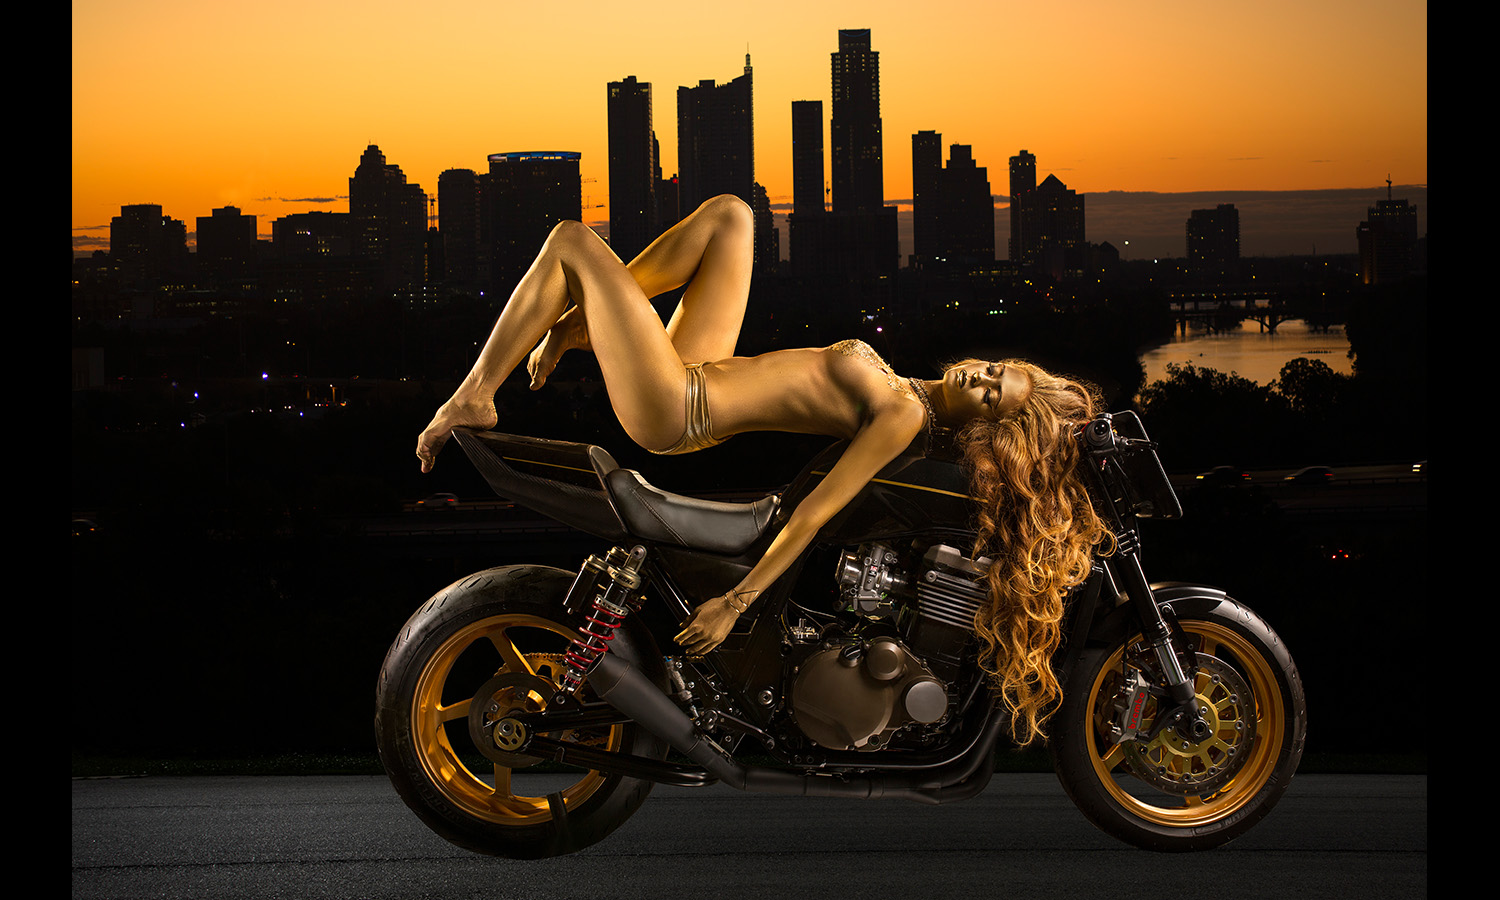 golden bodypaint babe onmotorcycle Motorcycle Babes